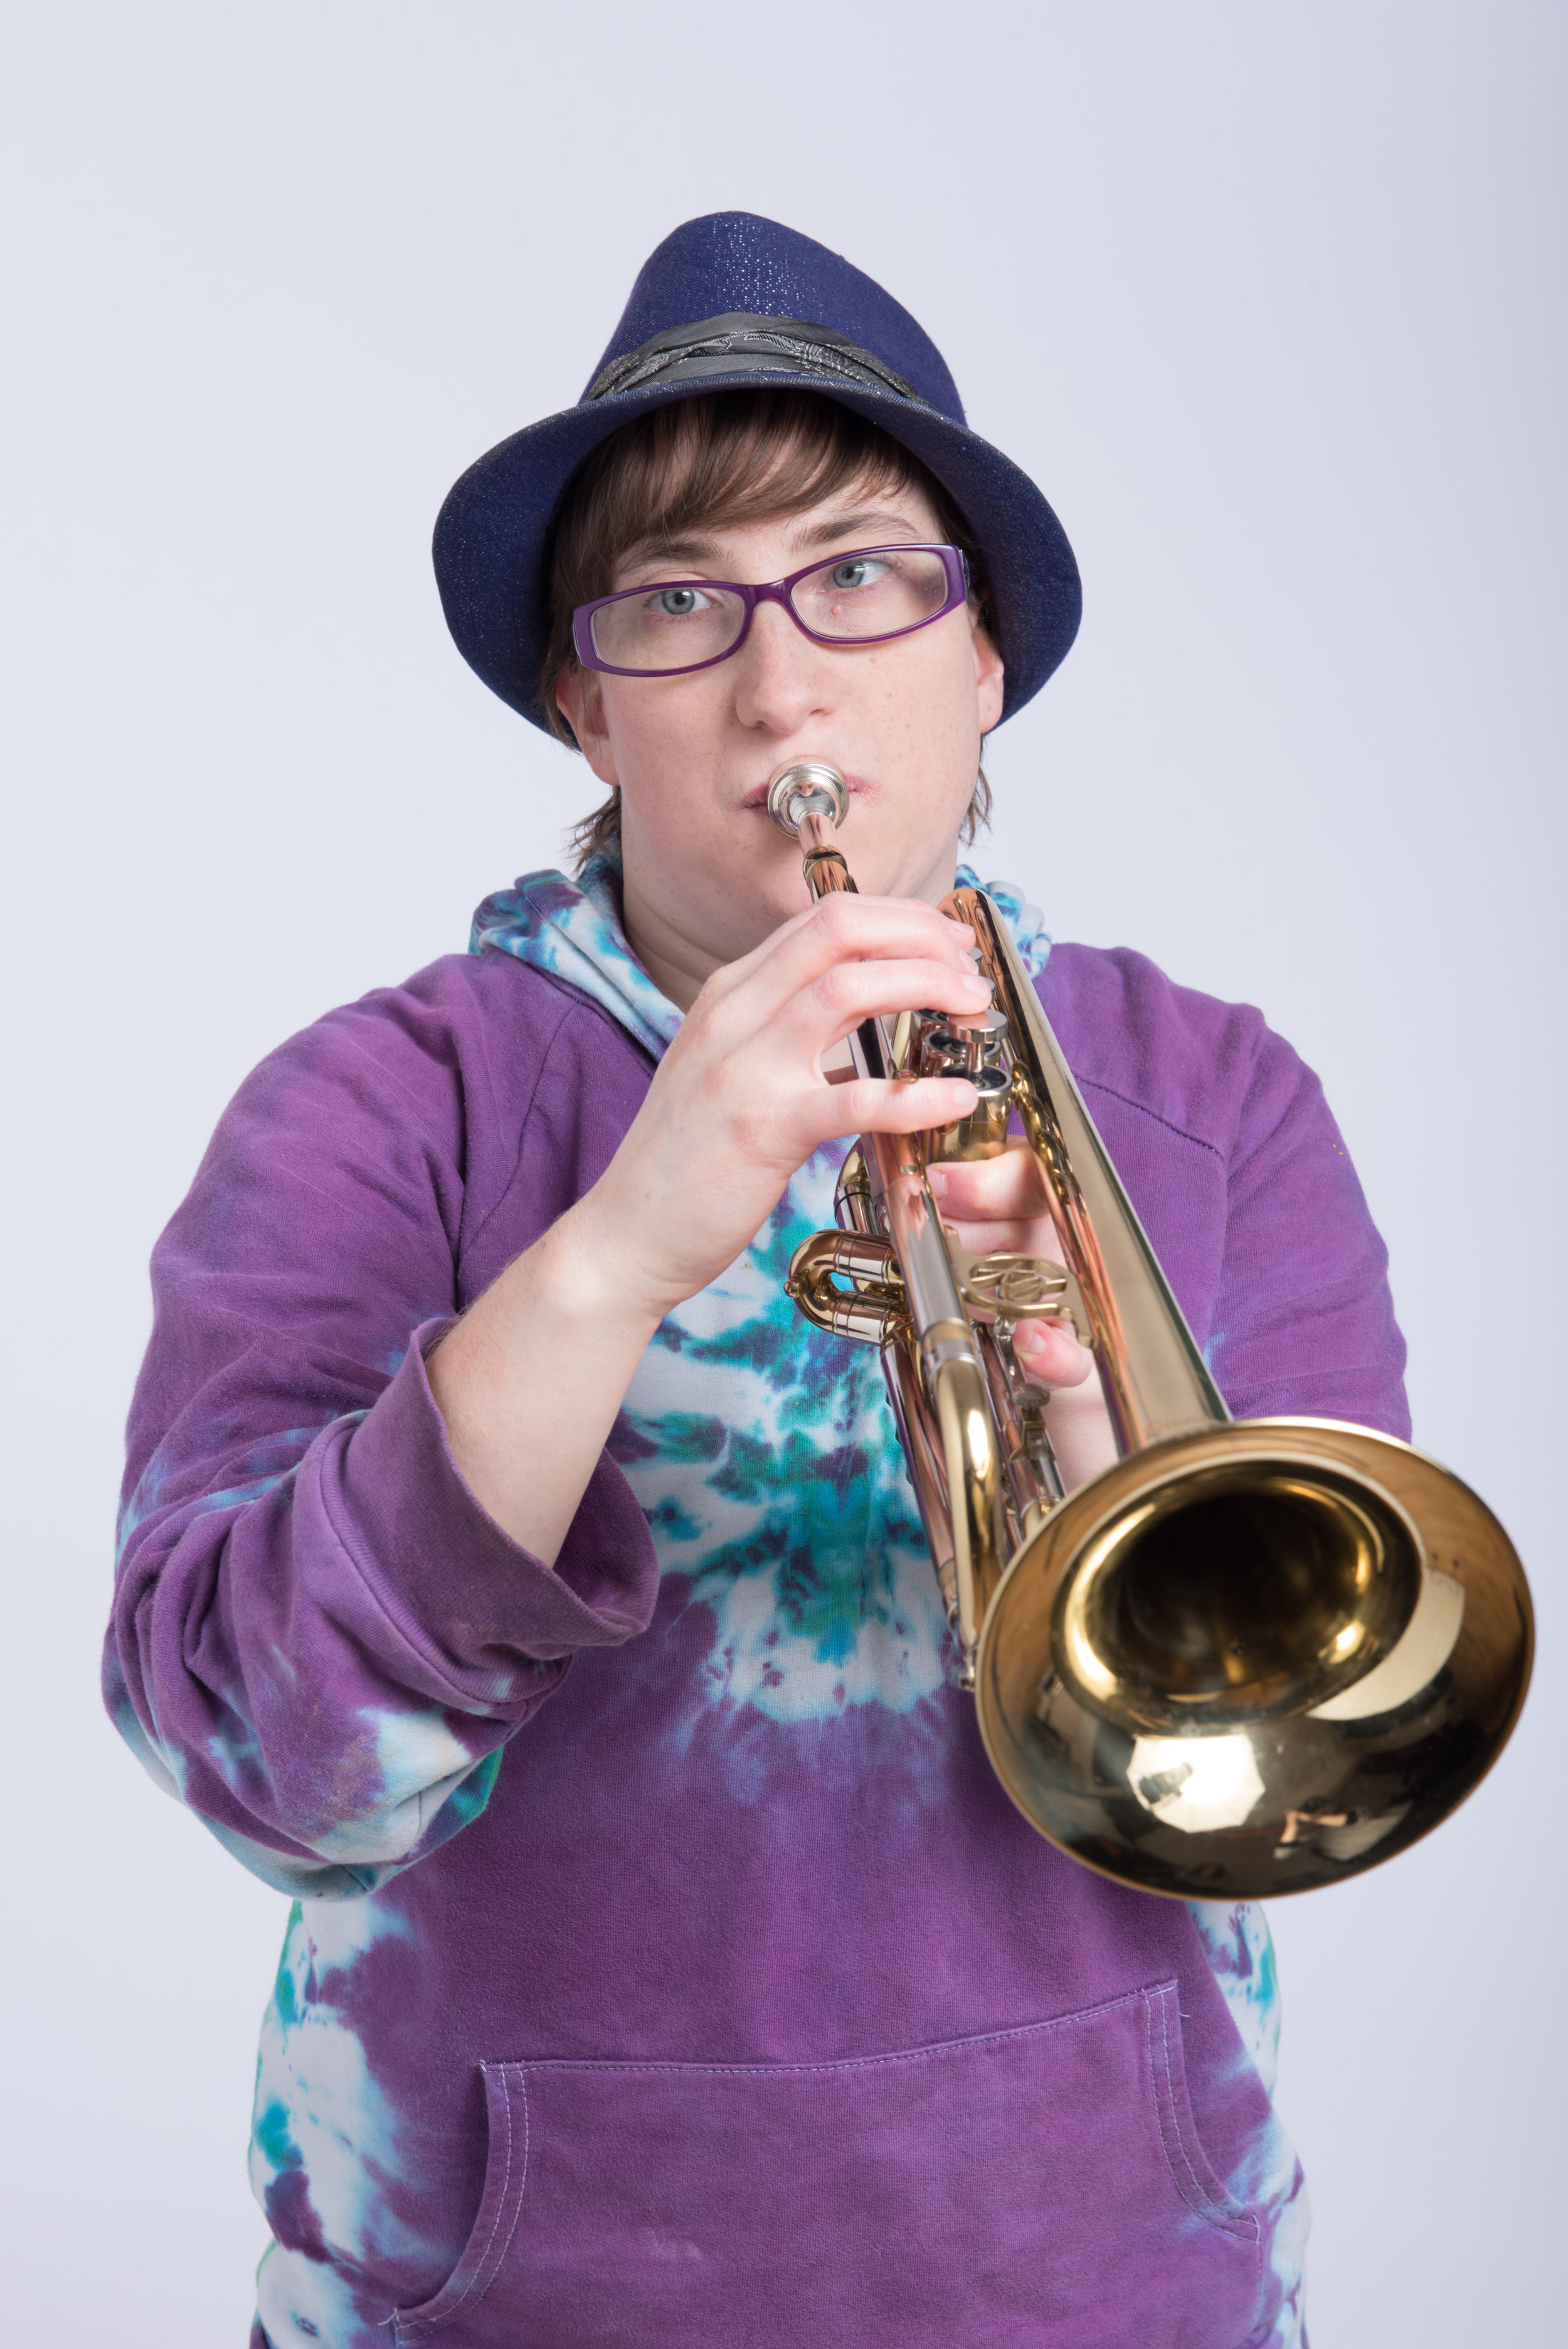 2 - I love playing the trumpet